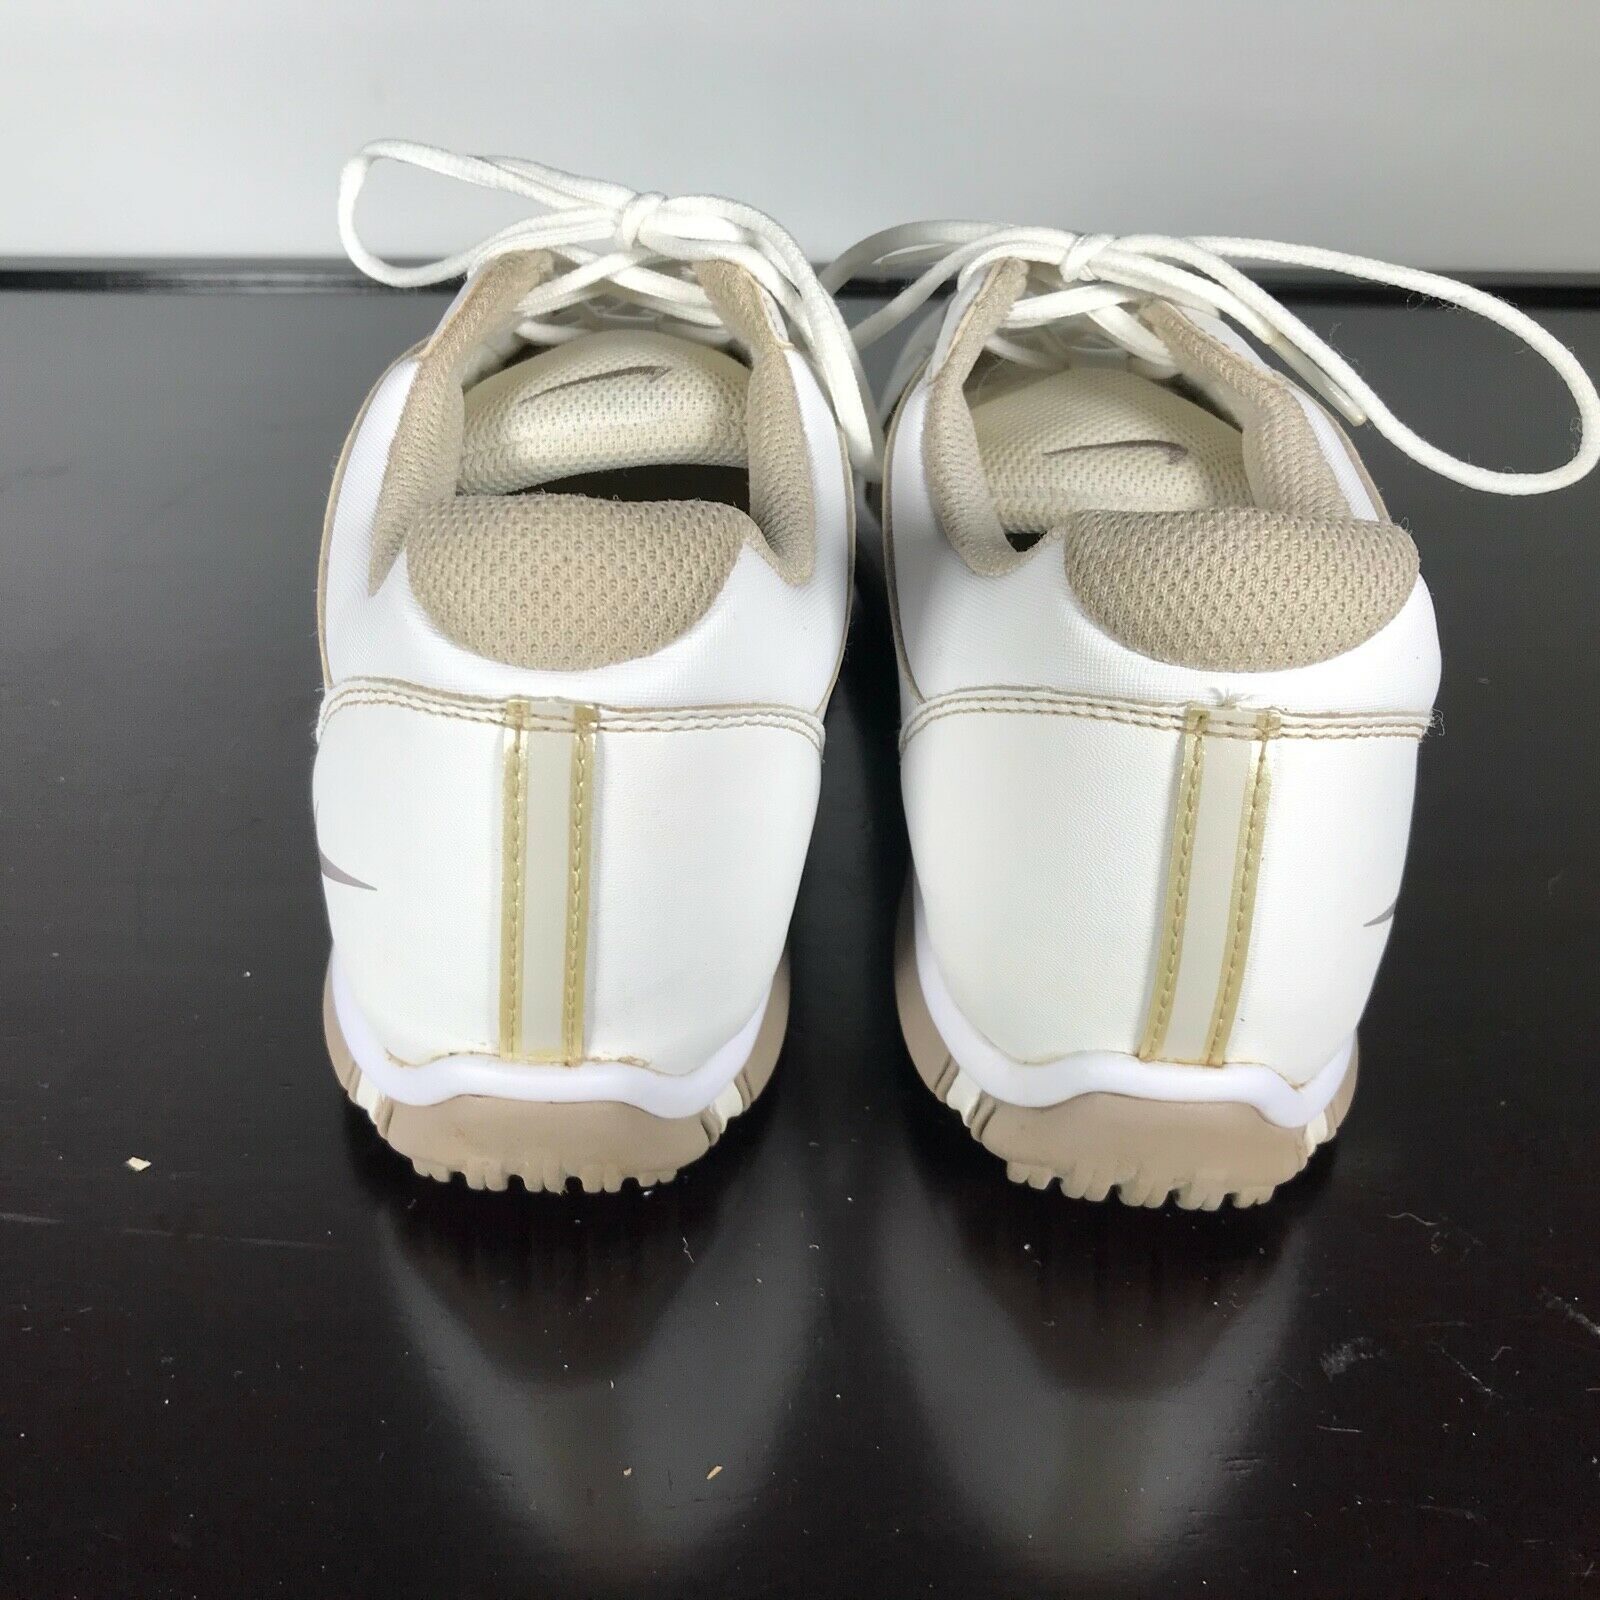 Nike Sz 7.5  TAC Traction at Contact Golf Shoes White Laces Spikes, Women, Nice!